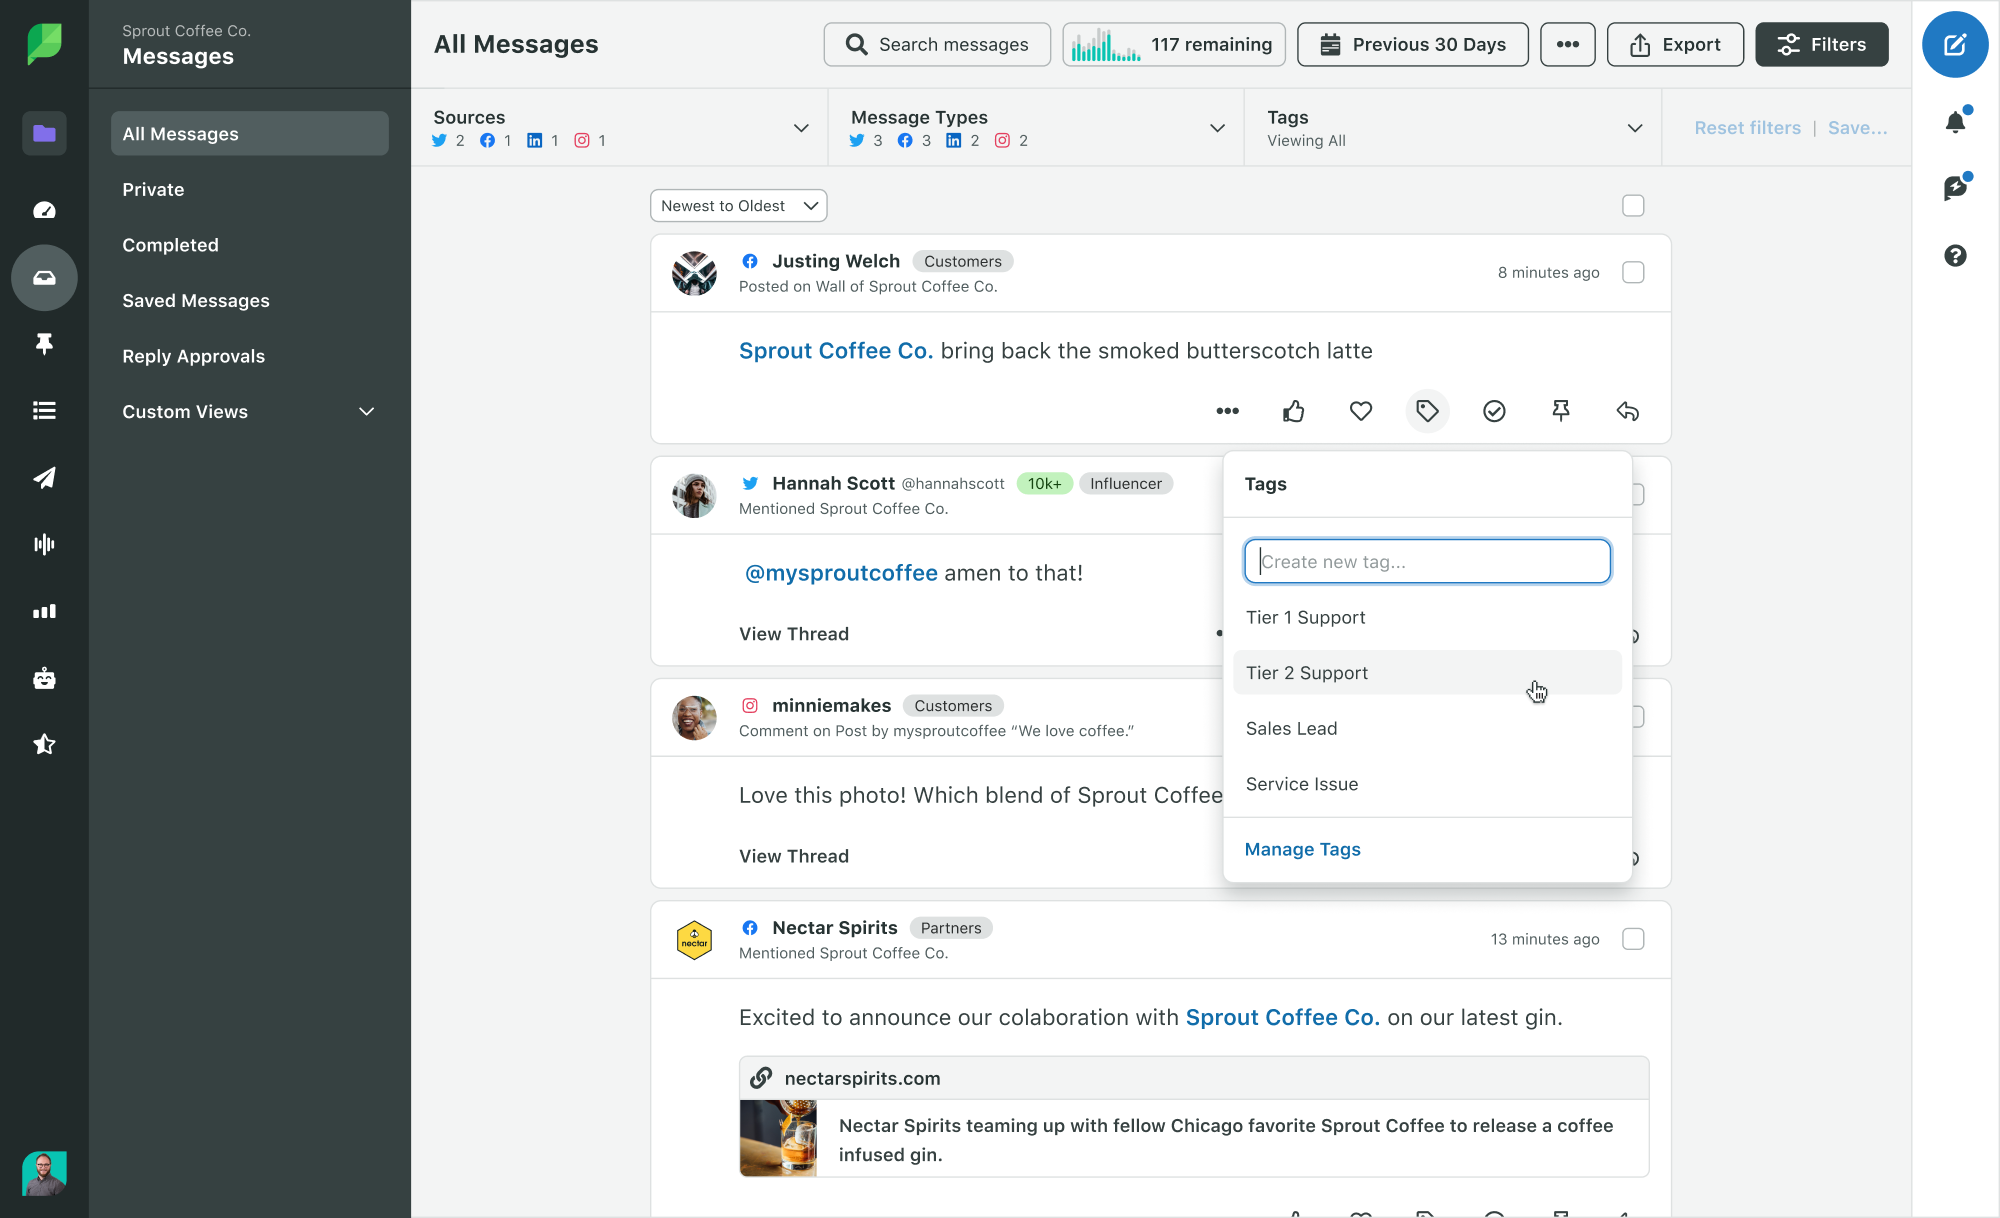 Sprout Social's Smart Inbox with message tagging and collaboration